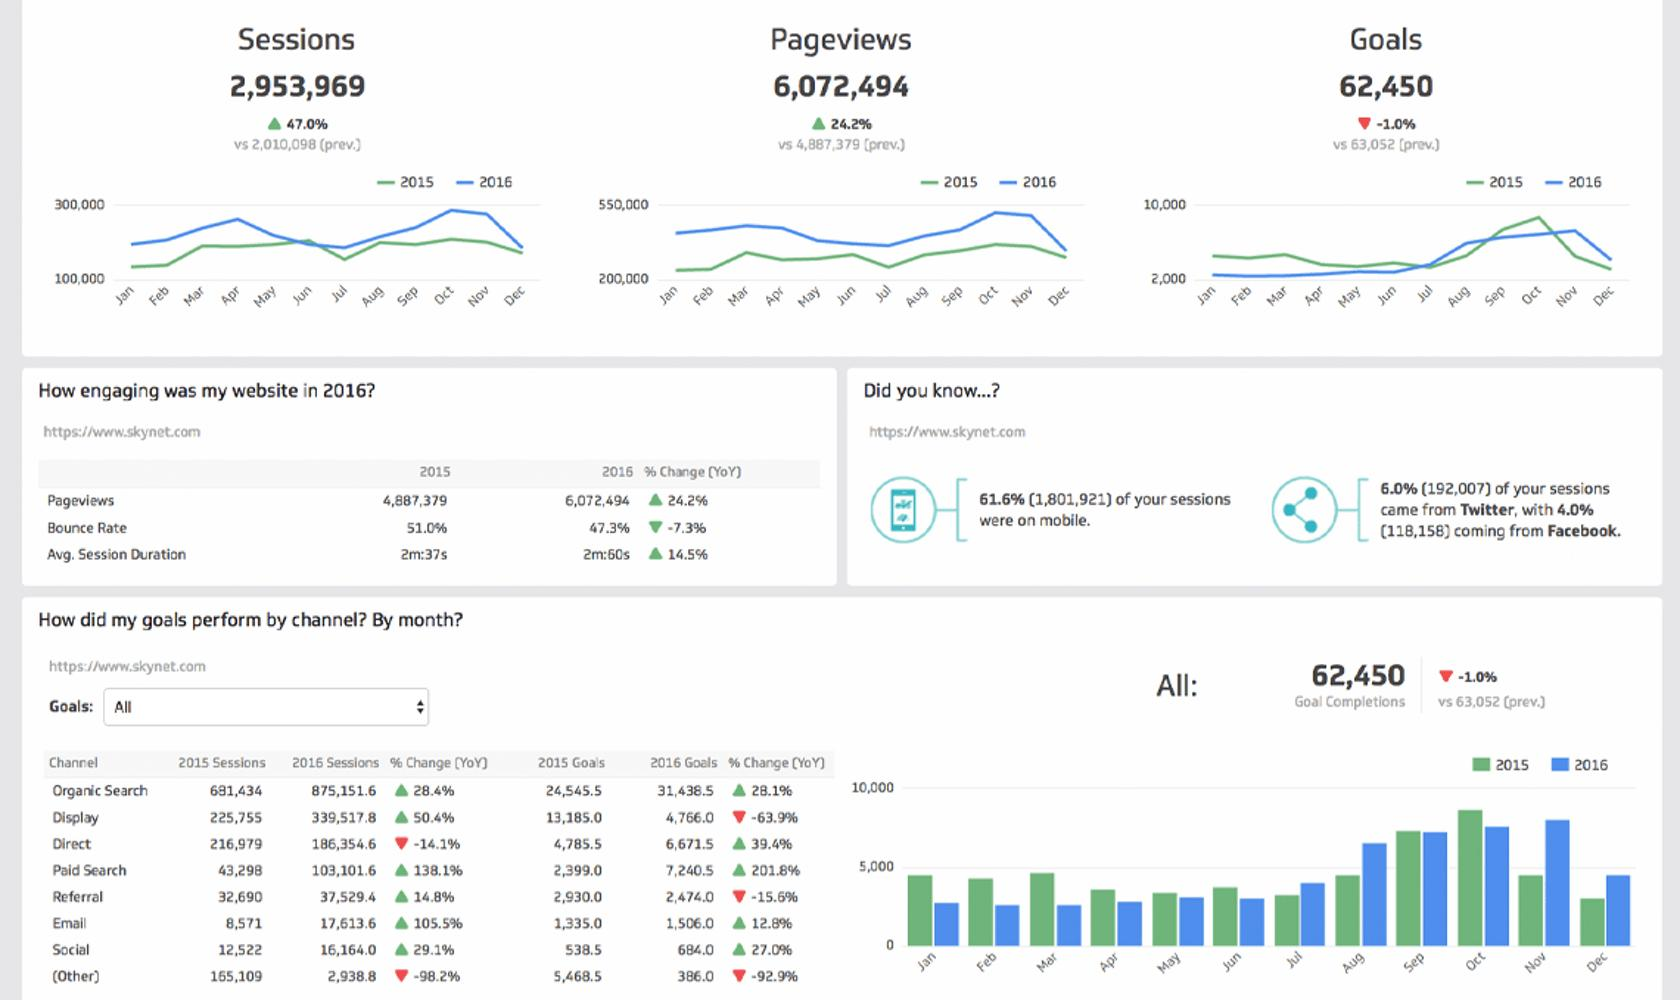 Dashboard design UX applied with regards to readability and an understanding of the data